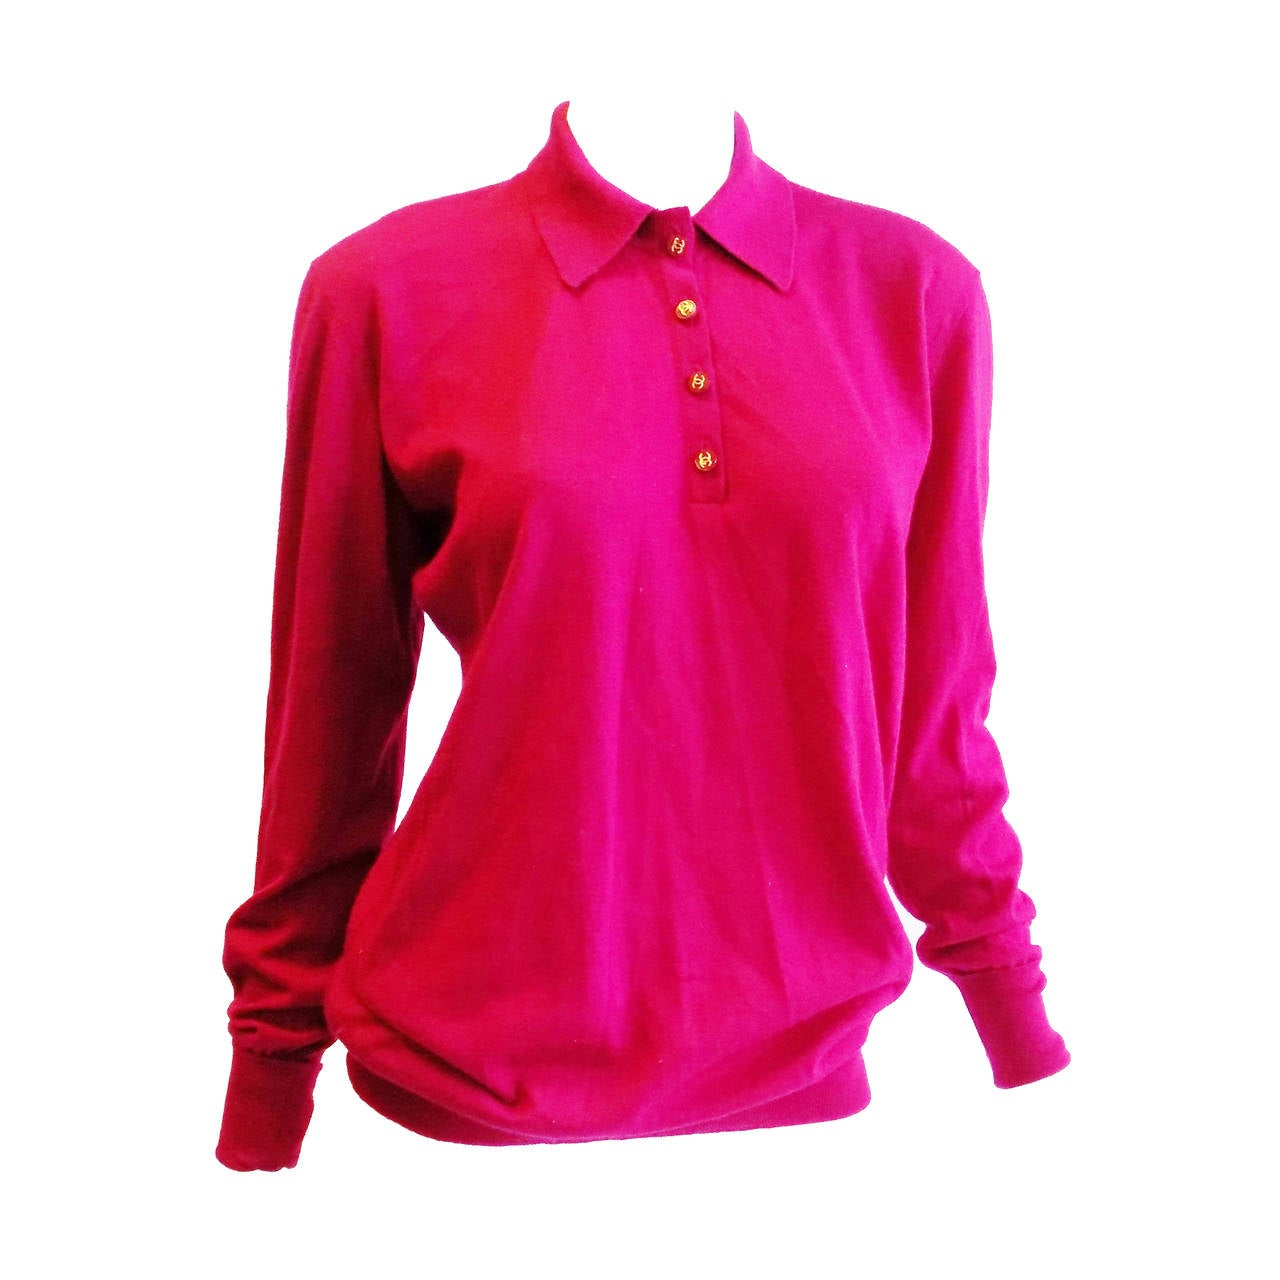 Chanel Vintage  cerise pink  cashmere button front  sweater top 1